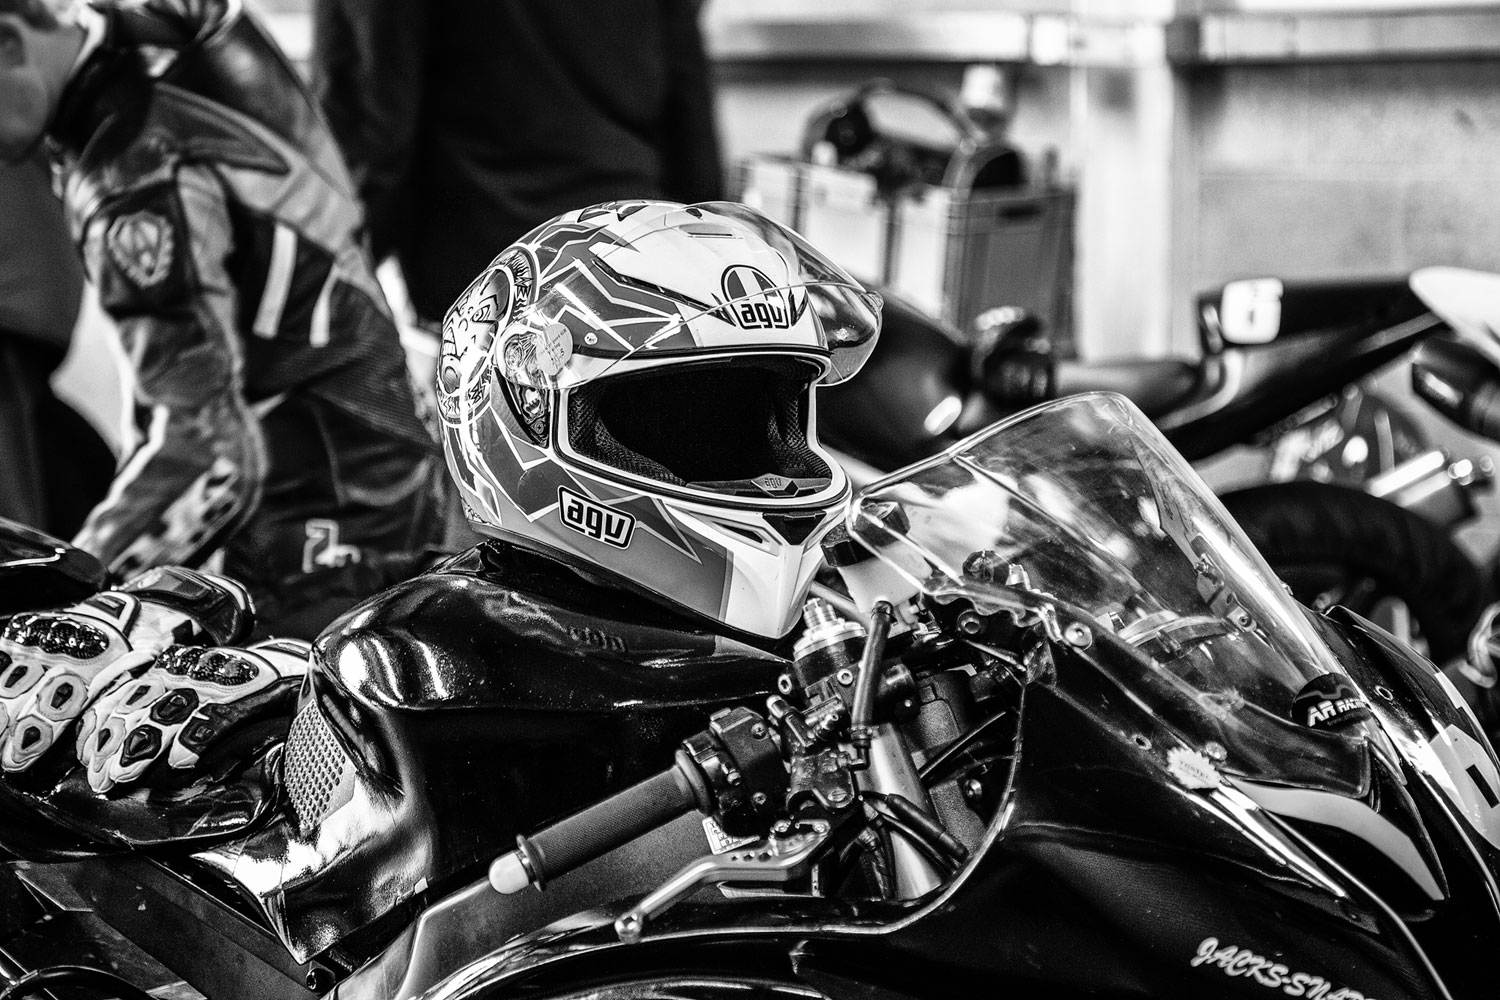 Motorcycle - Adam Hillier Commercial Photography